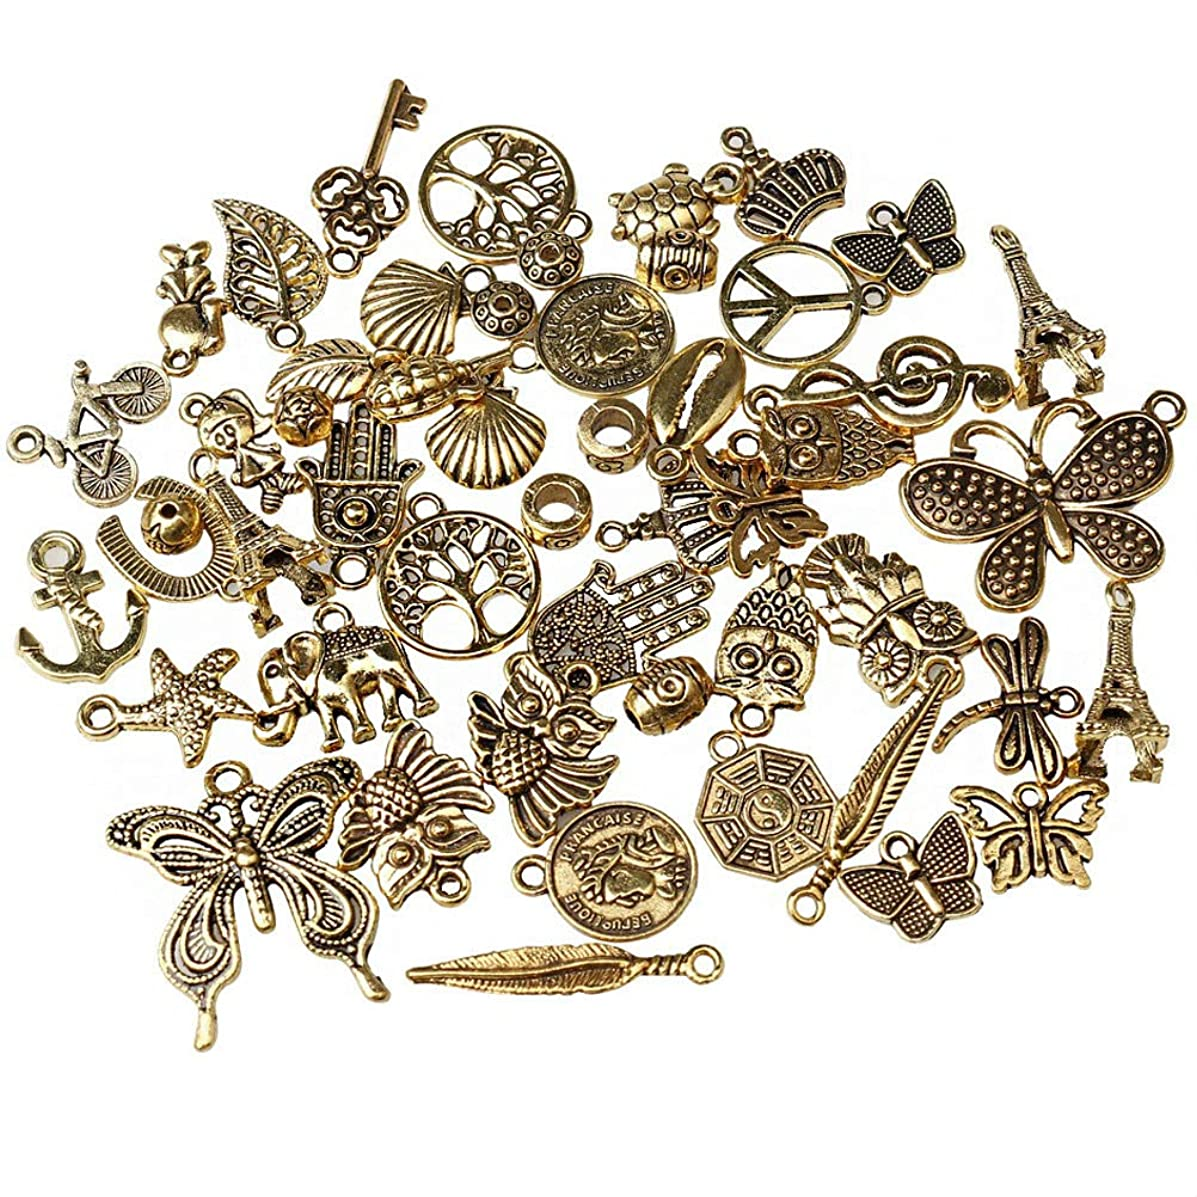 Jewelry Charms, EUBags 50 PCS Antique Gold Assorted Mixed Charms Pendants DIY for Necklace Bracelet Jewelry Making and Crafting